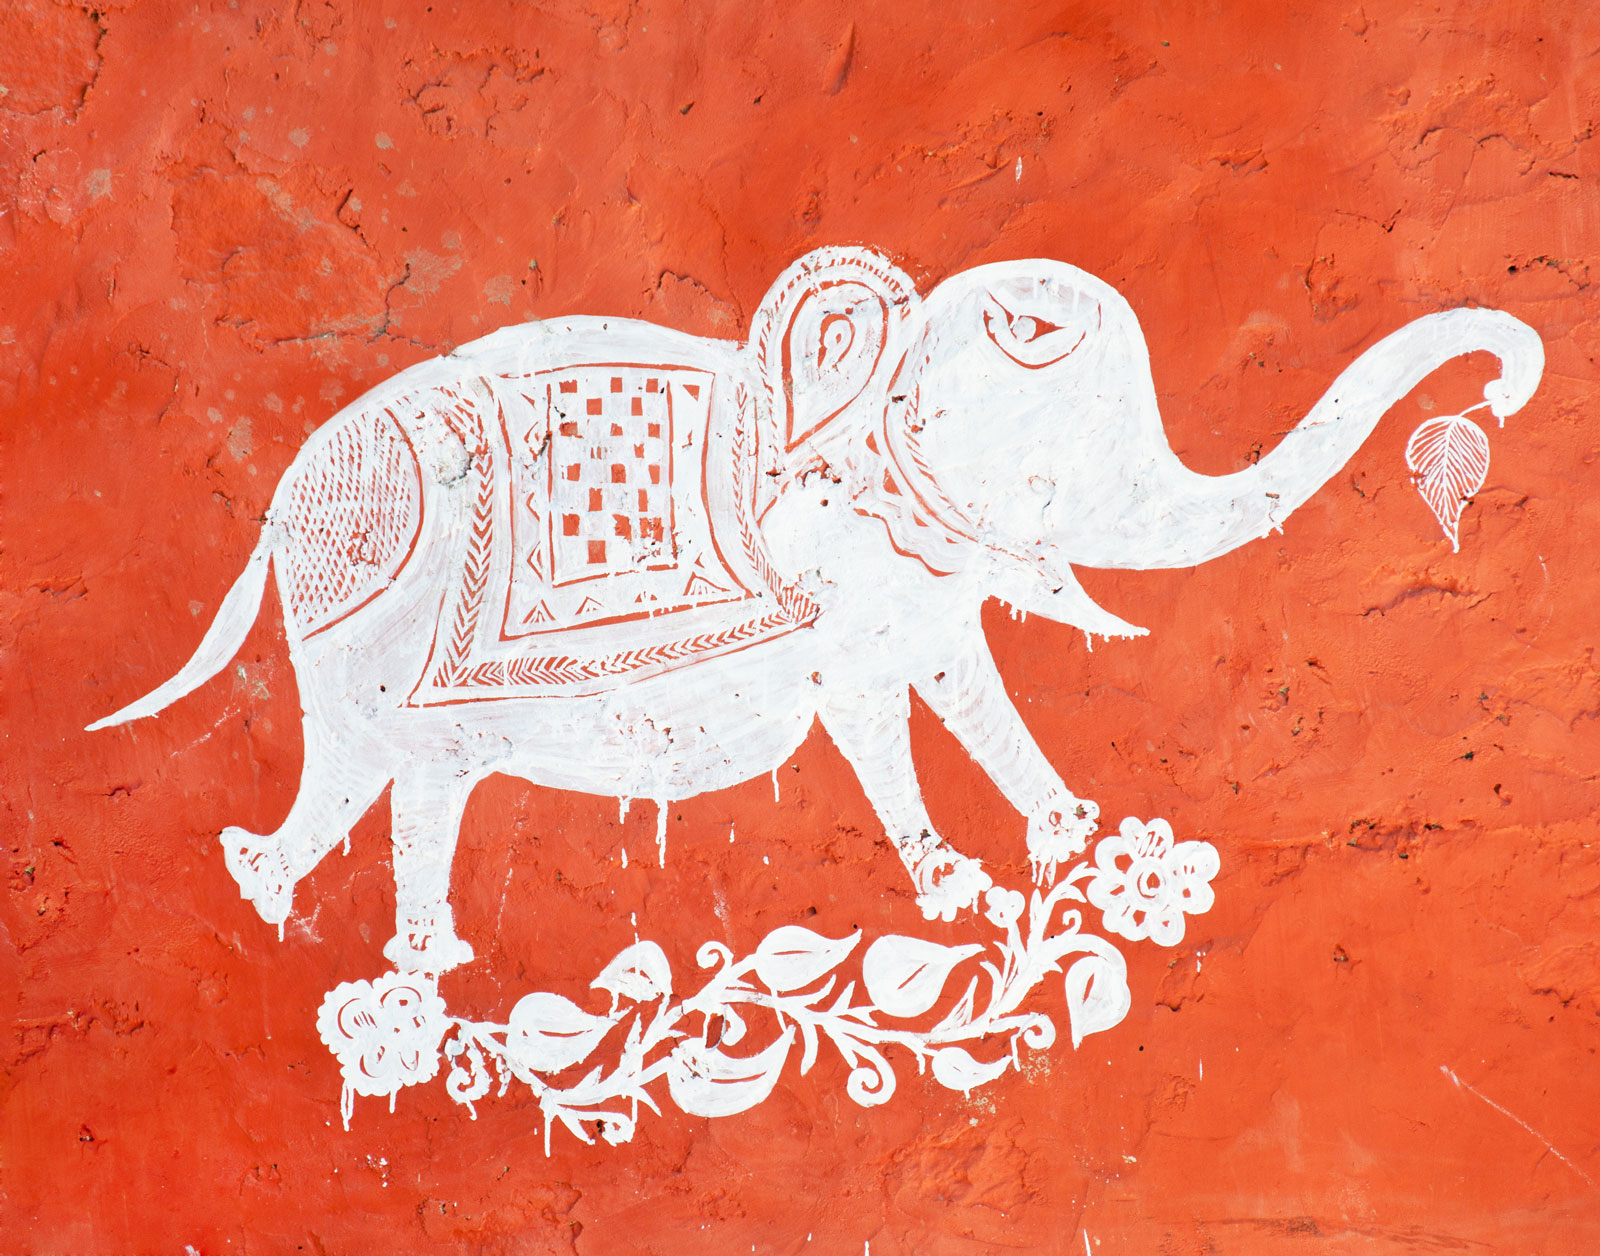 Wall Painting, Jaipur.